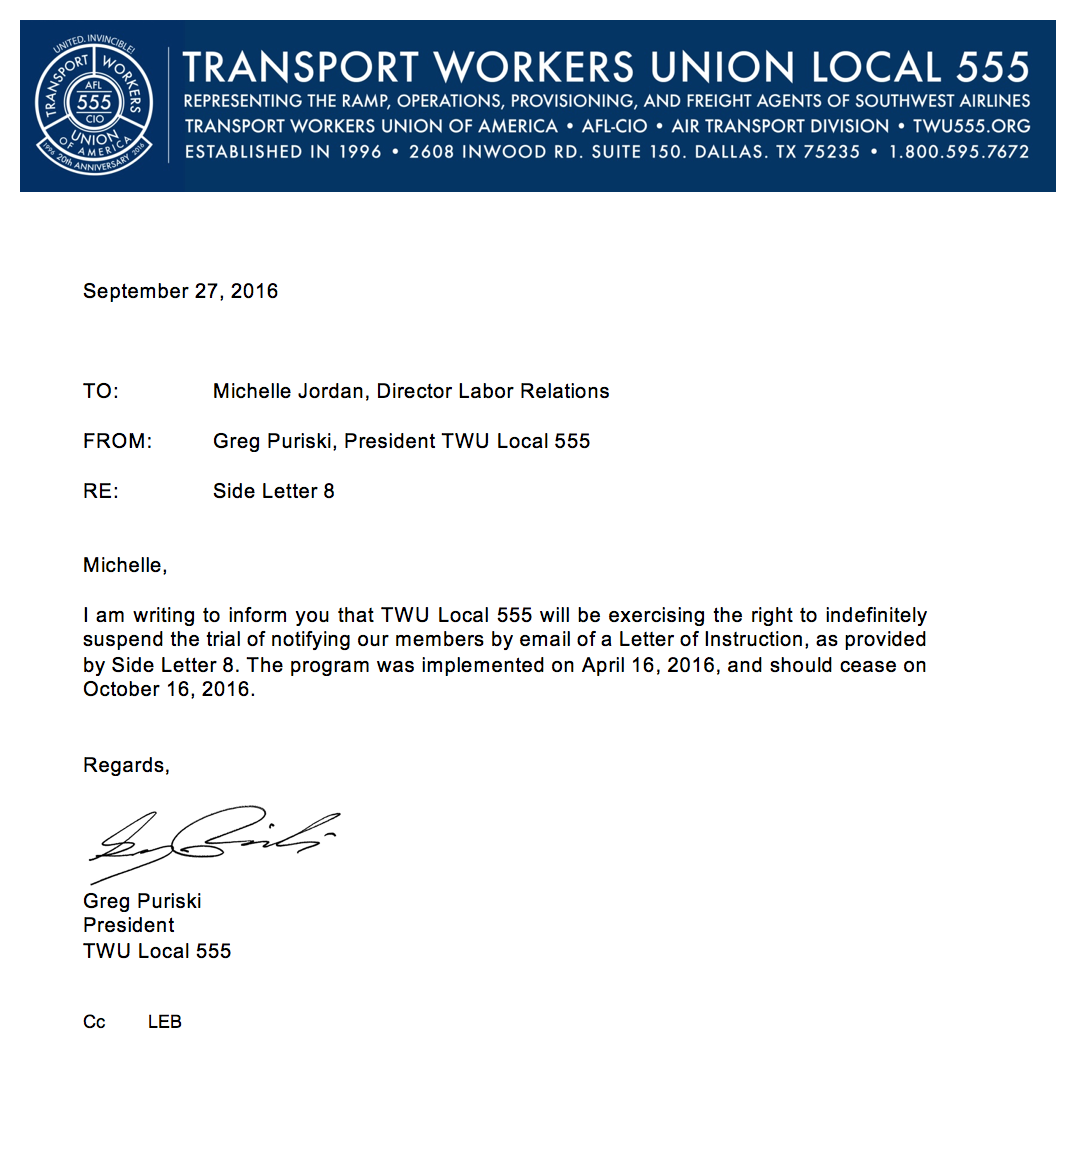 Black Book – TRANSPORT WORKERS UNION LOCAL 555